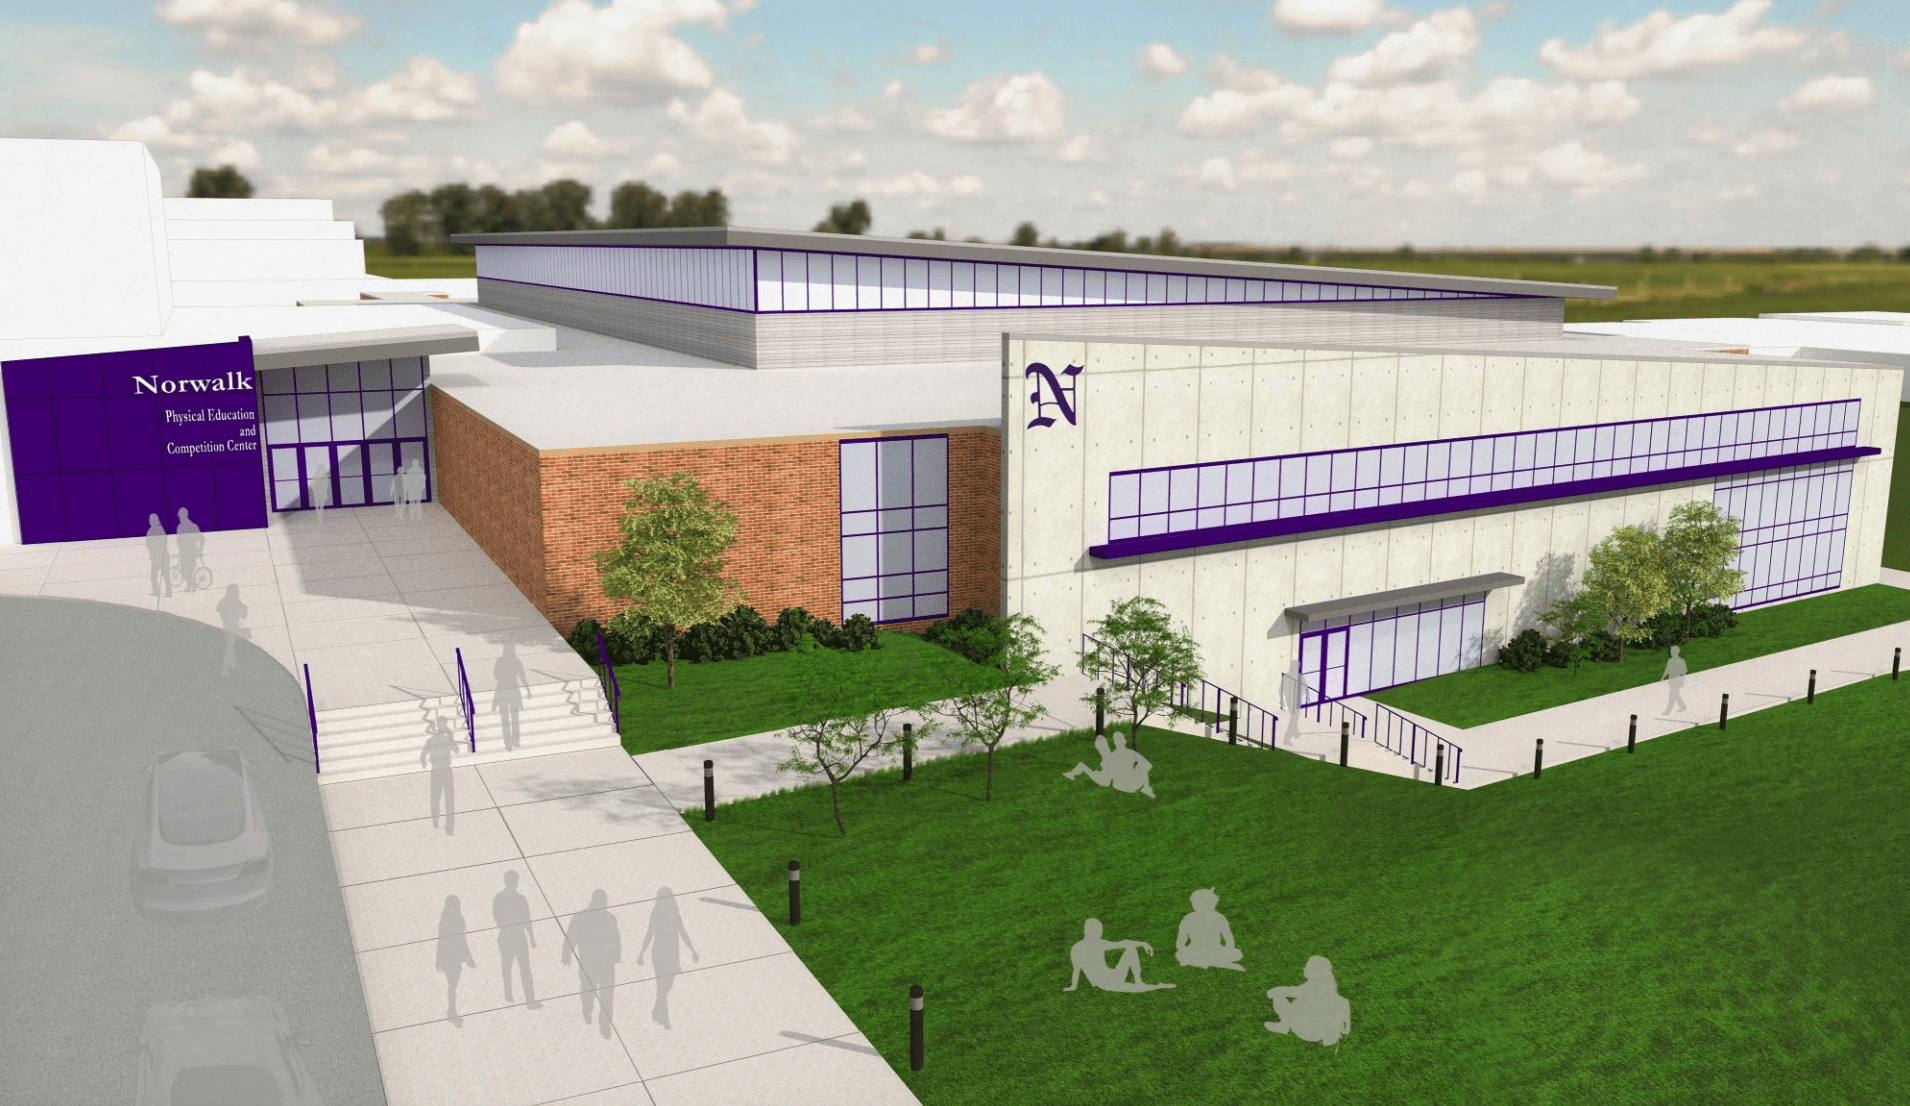 Norwalk Voting on $24 Million Physical Education and Competition Center Tuesday 3